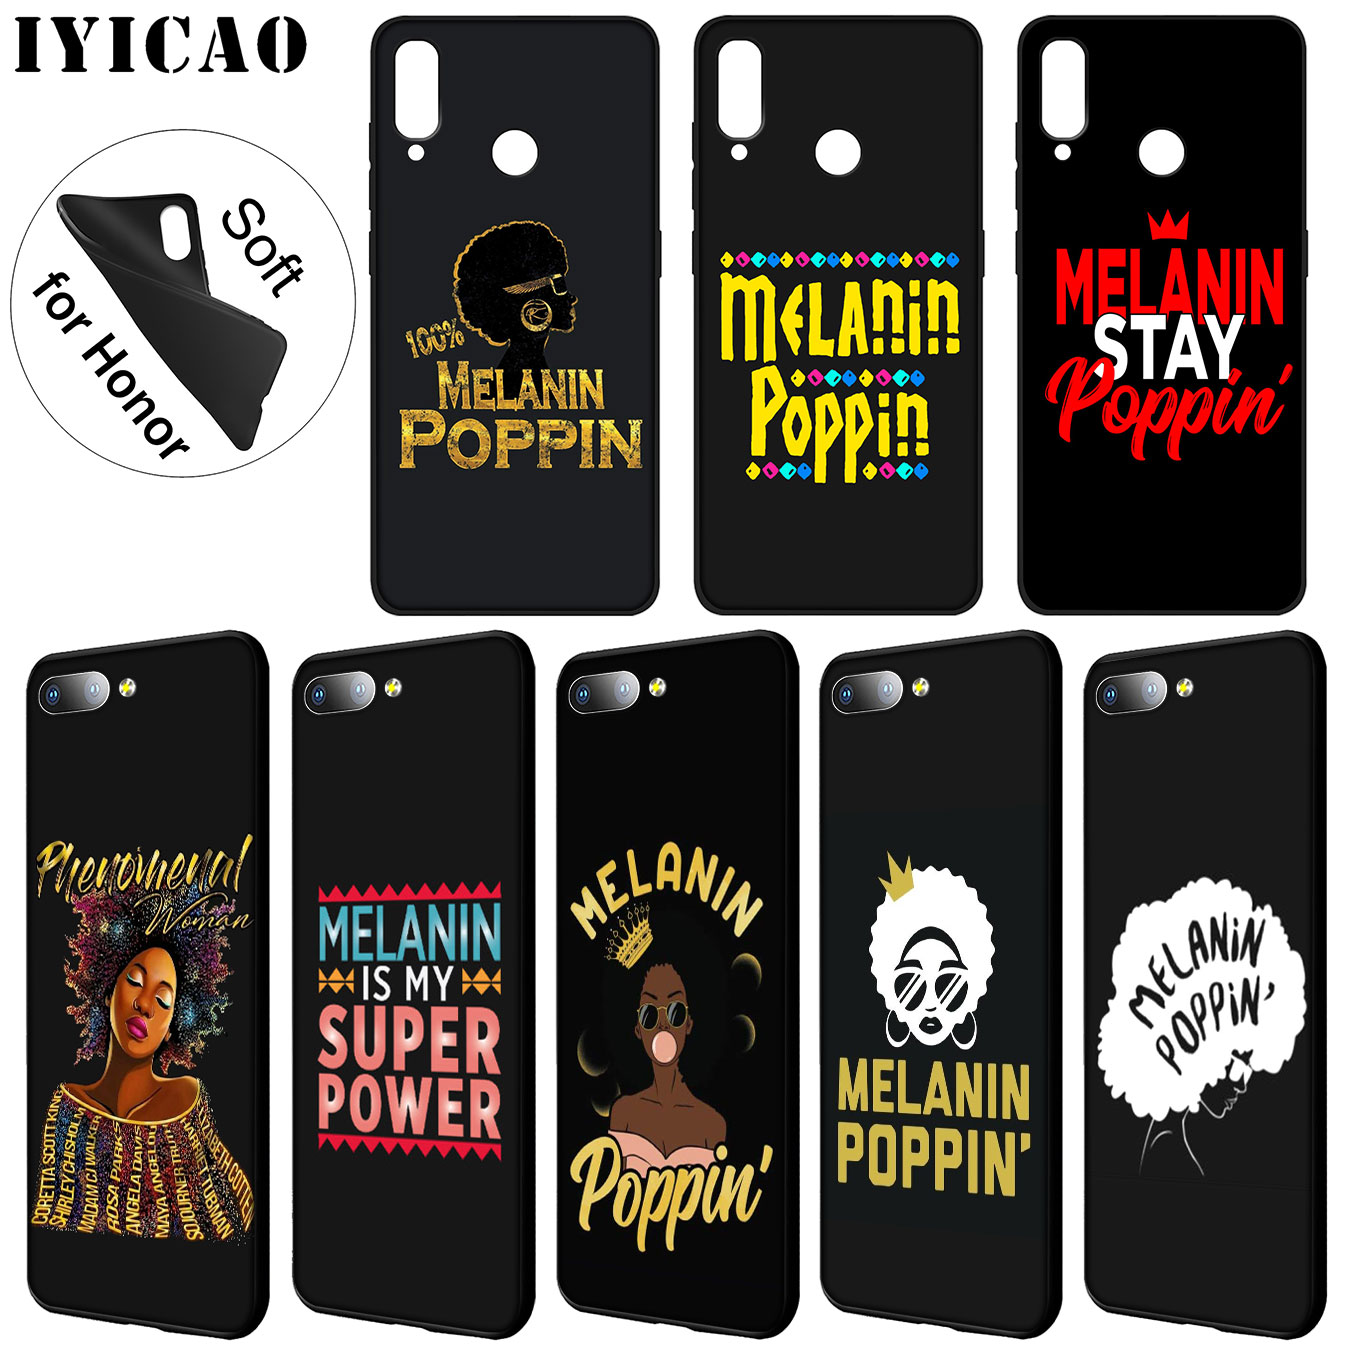 Conscientious Iyicao 2bunz Melanin Poppin Aba Soft Silicone Case For Huawei Y7 Y6 Prime Y9 2018 Y5 Honor 8c 8x 8 9 10 Lite 7c 7x 6a 7a Pro Fitted Cases Phone Bags & Cases